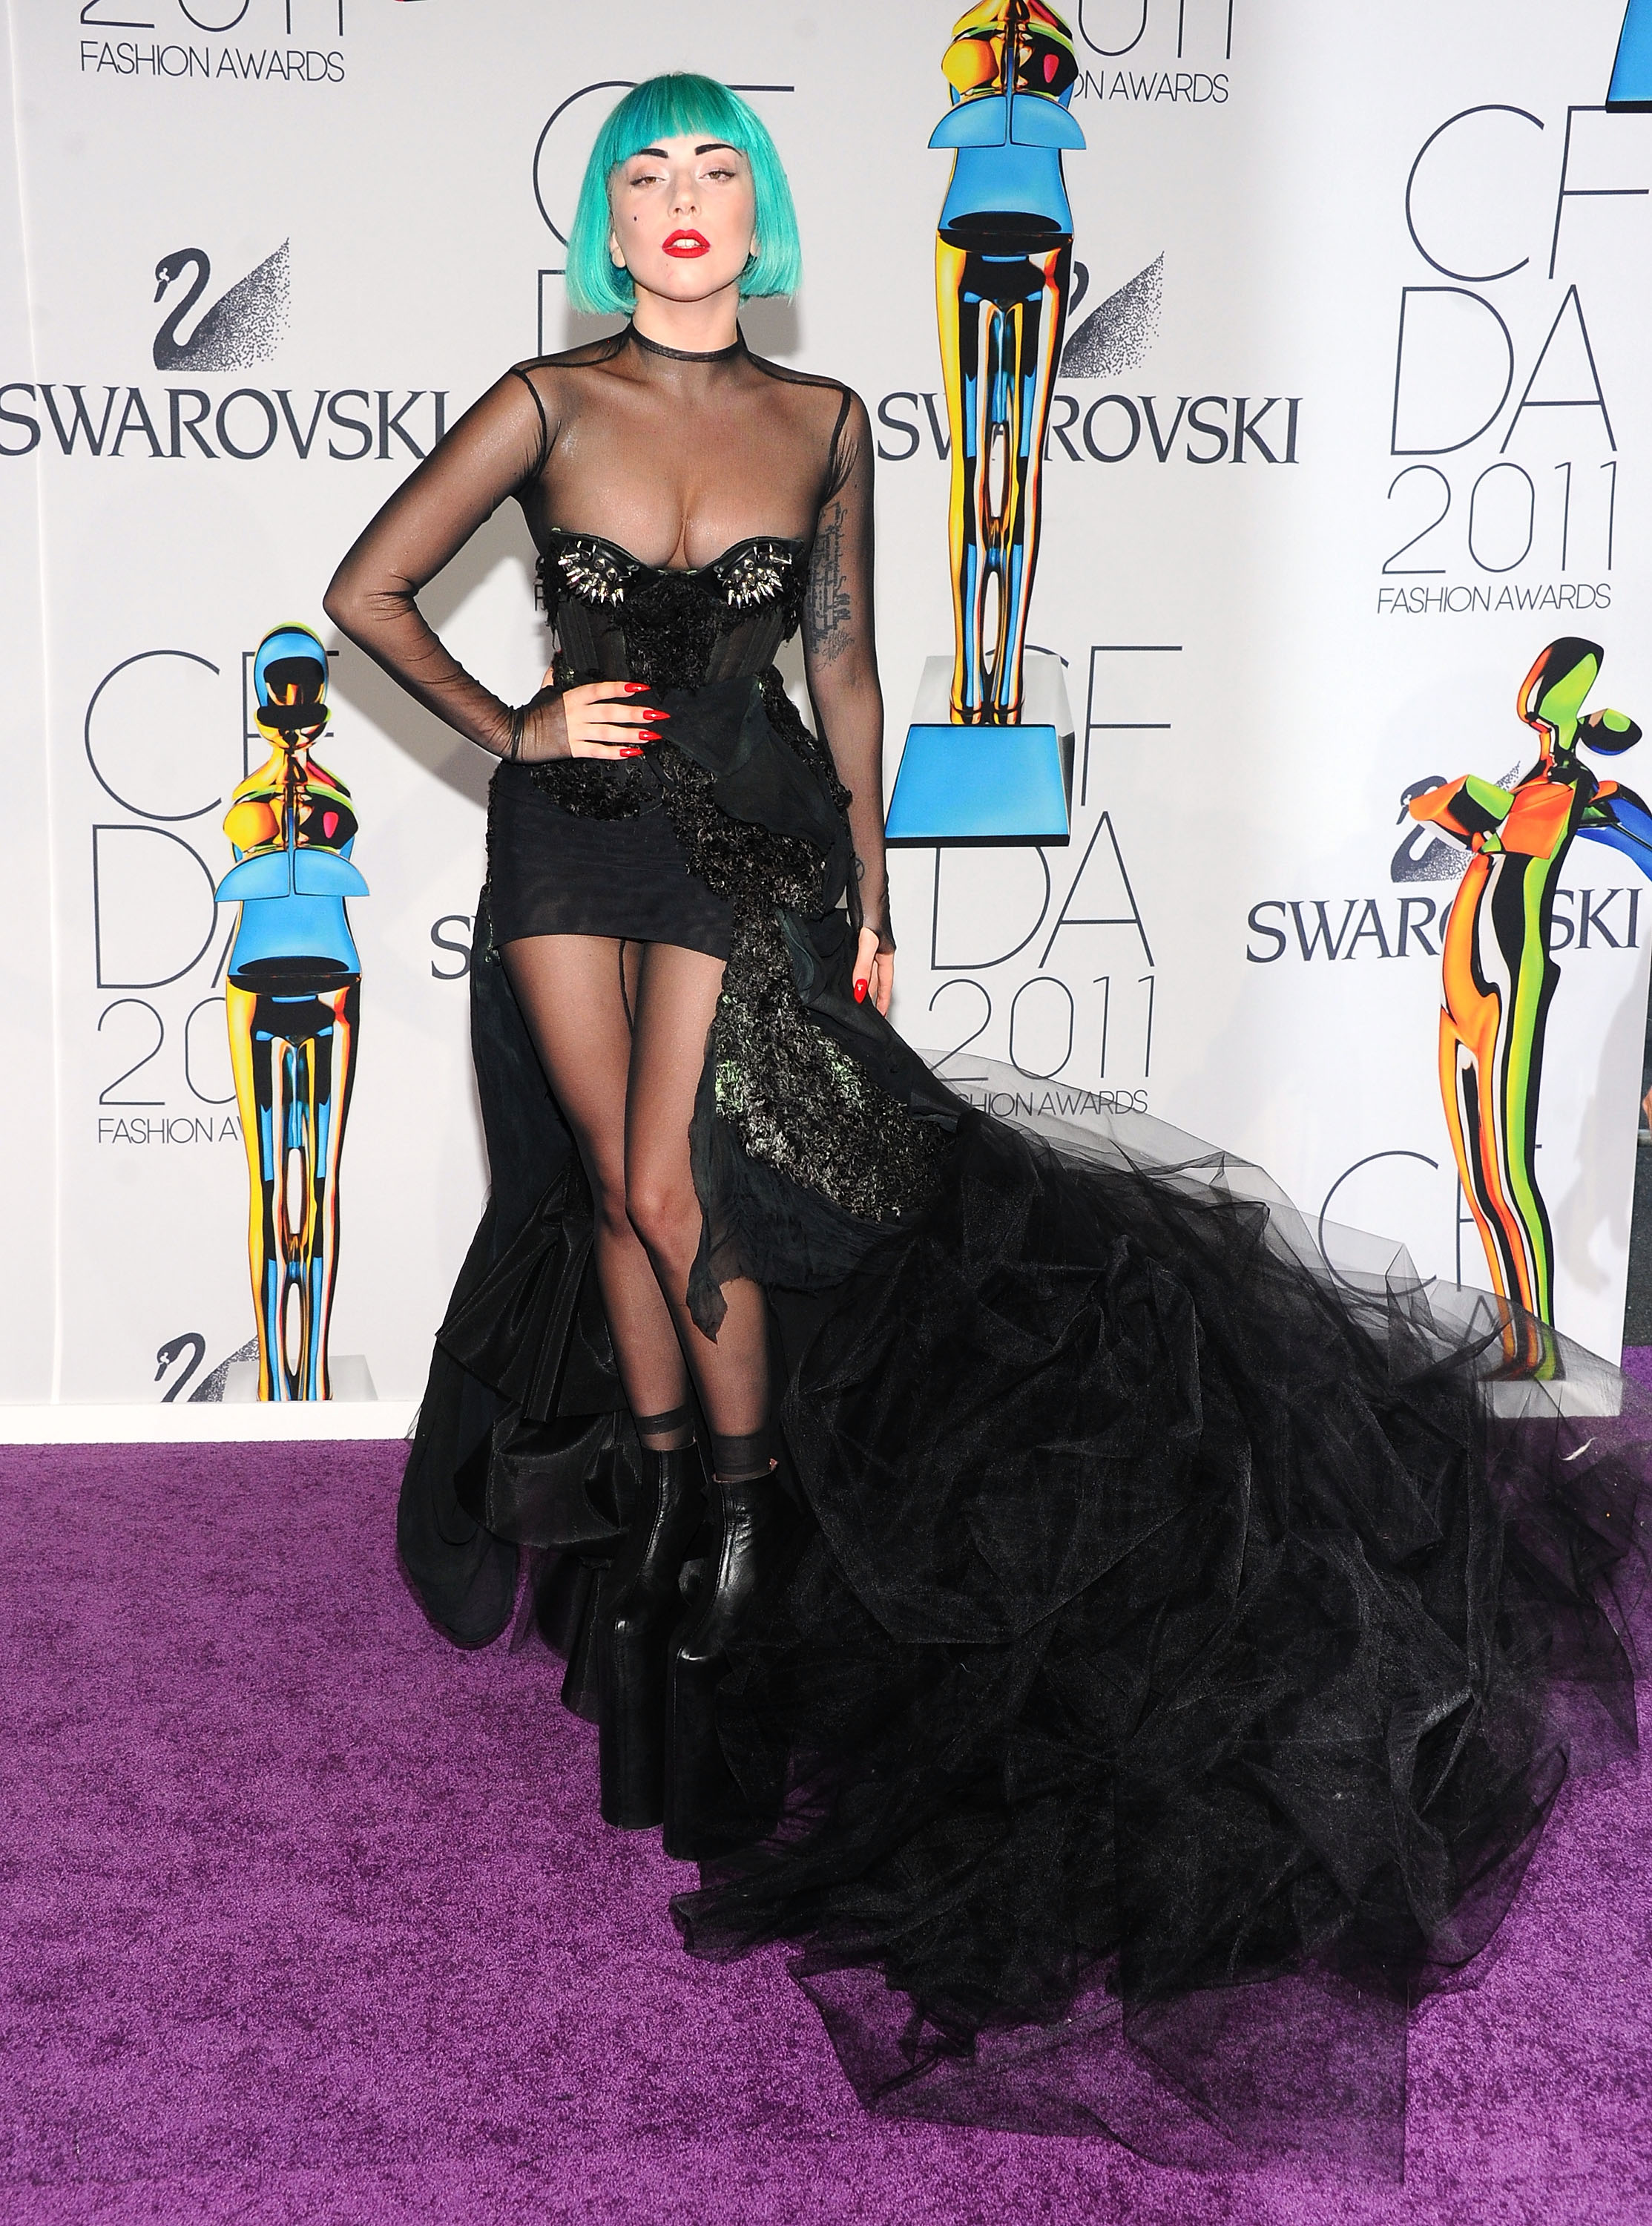 Fashion Celebrities And Wardrobe Malfunctions At The Cfda